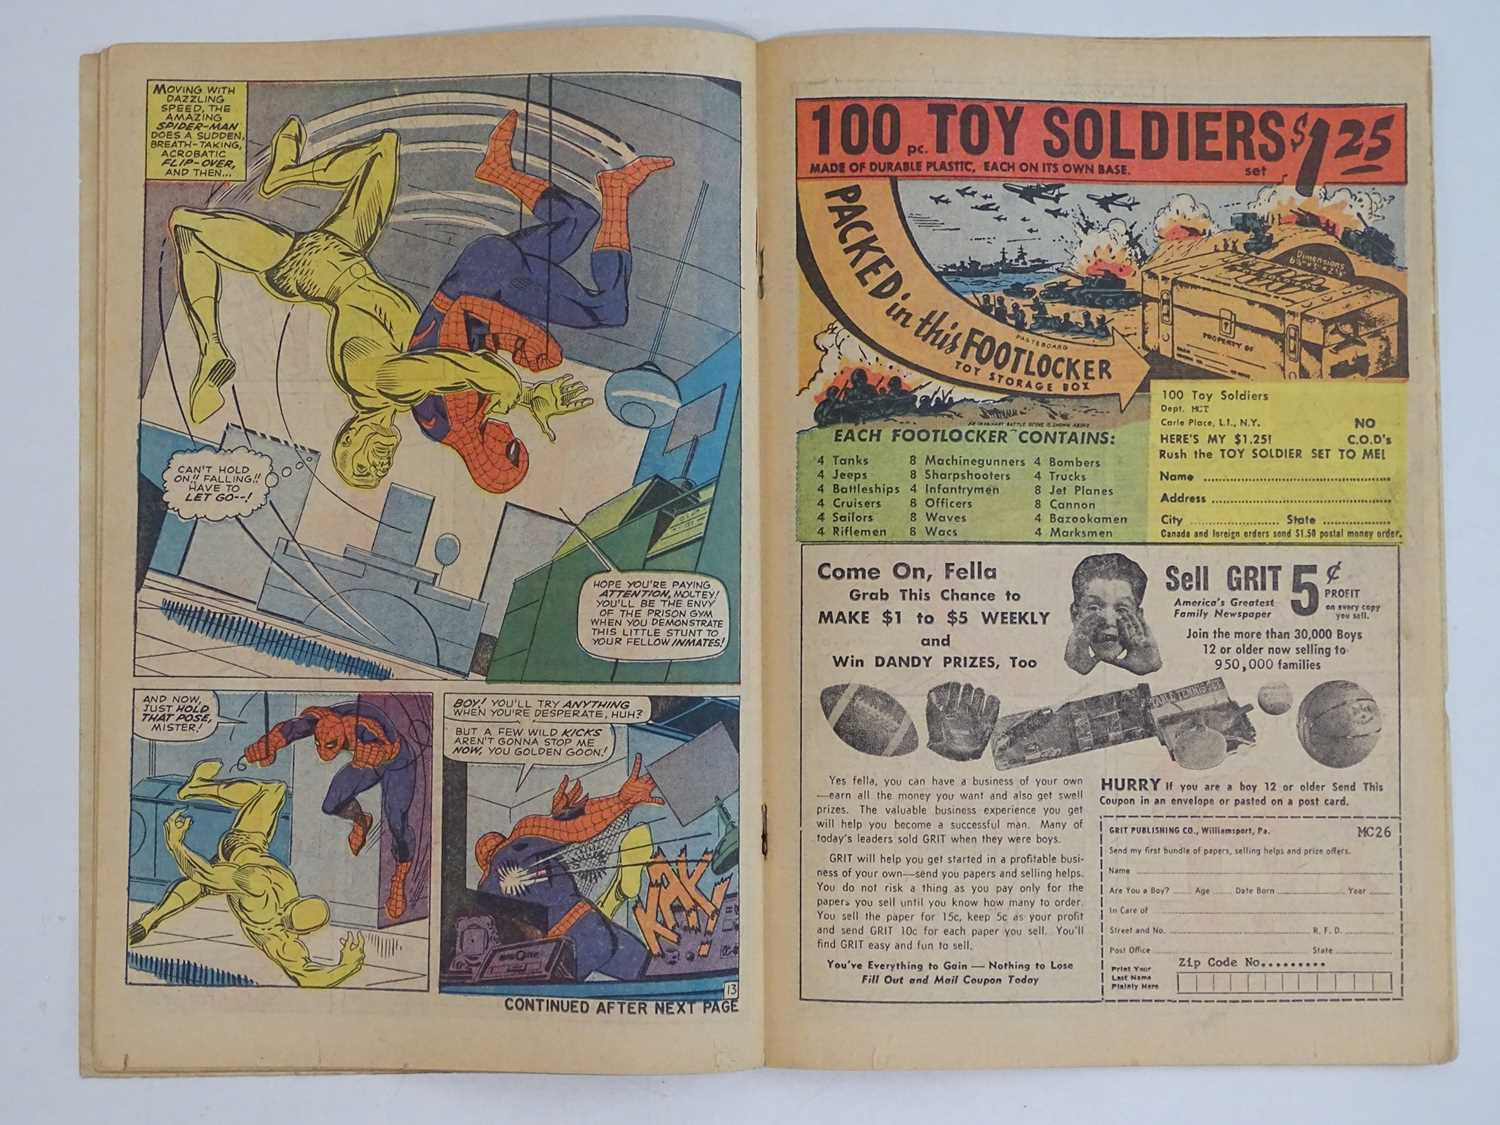 AMAZING SPIDER-MAN #35 - (1966 - MARVEL - UK Price Variant) - Second appearance of the Molten Man. - Image 5 of 9